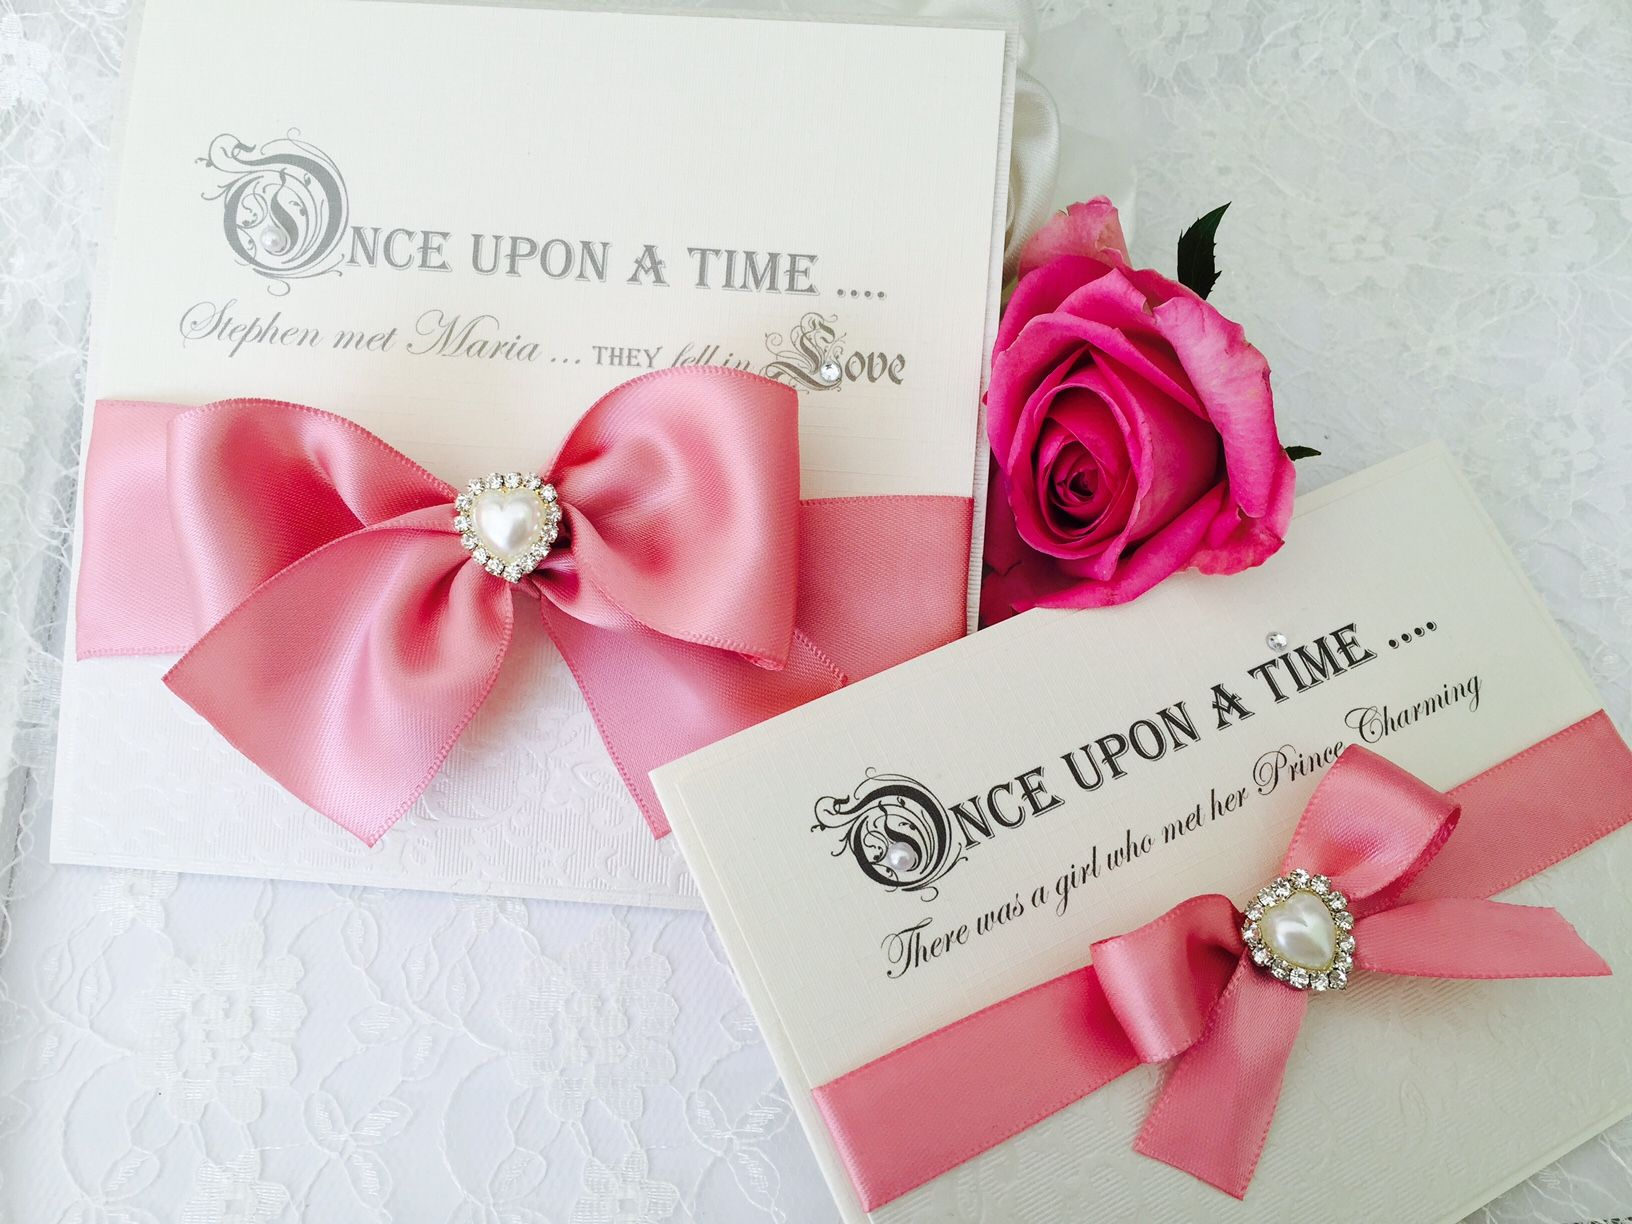 Fairytal quotes wedding invitations with bows and heart brooches